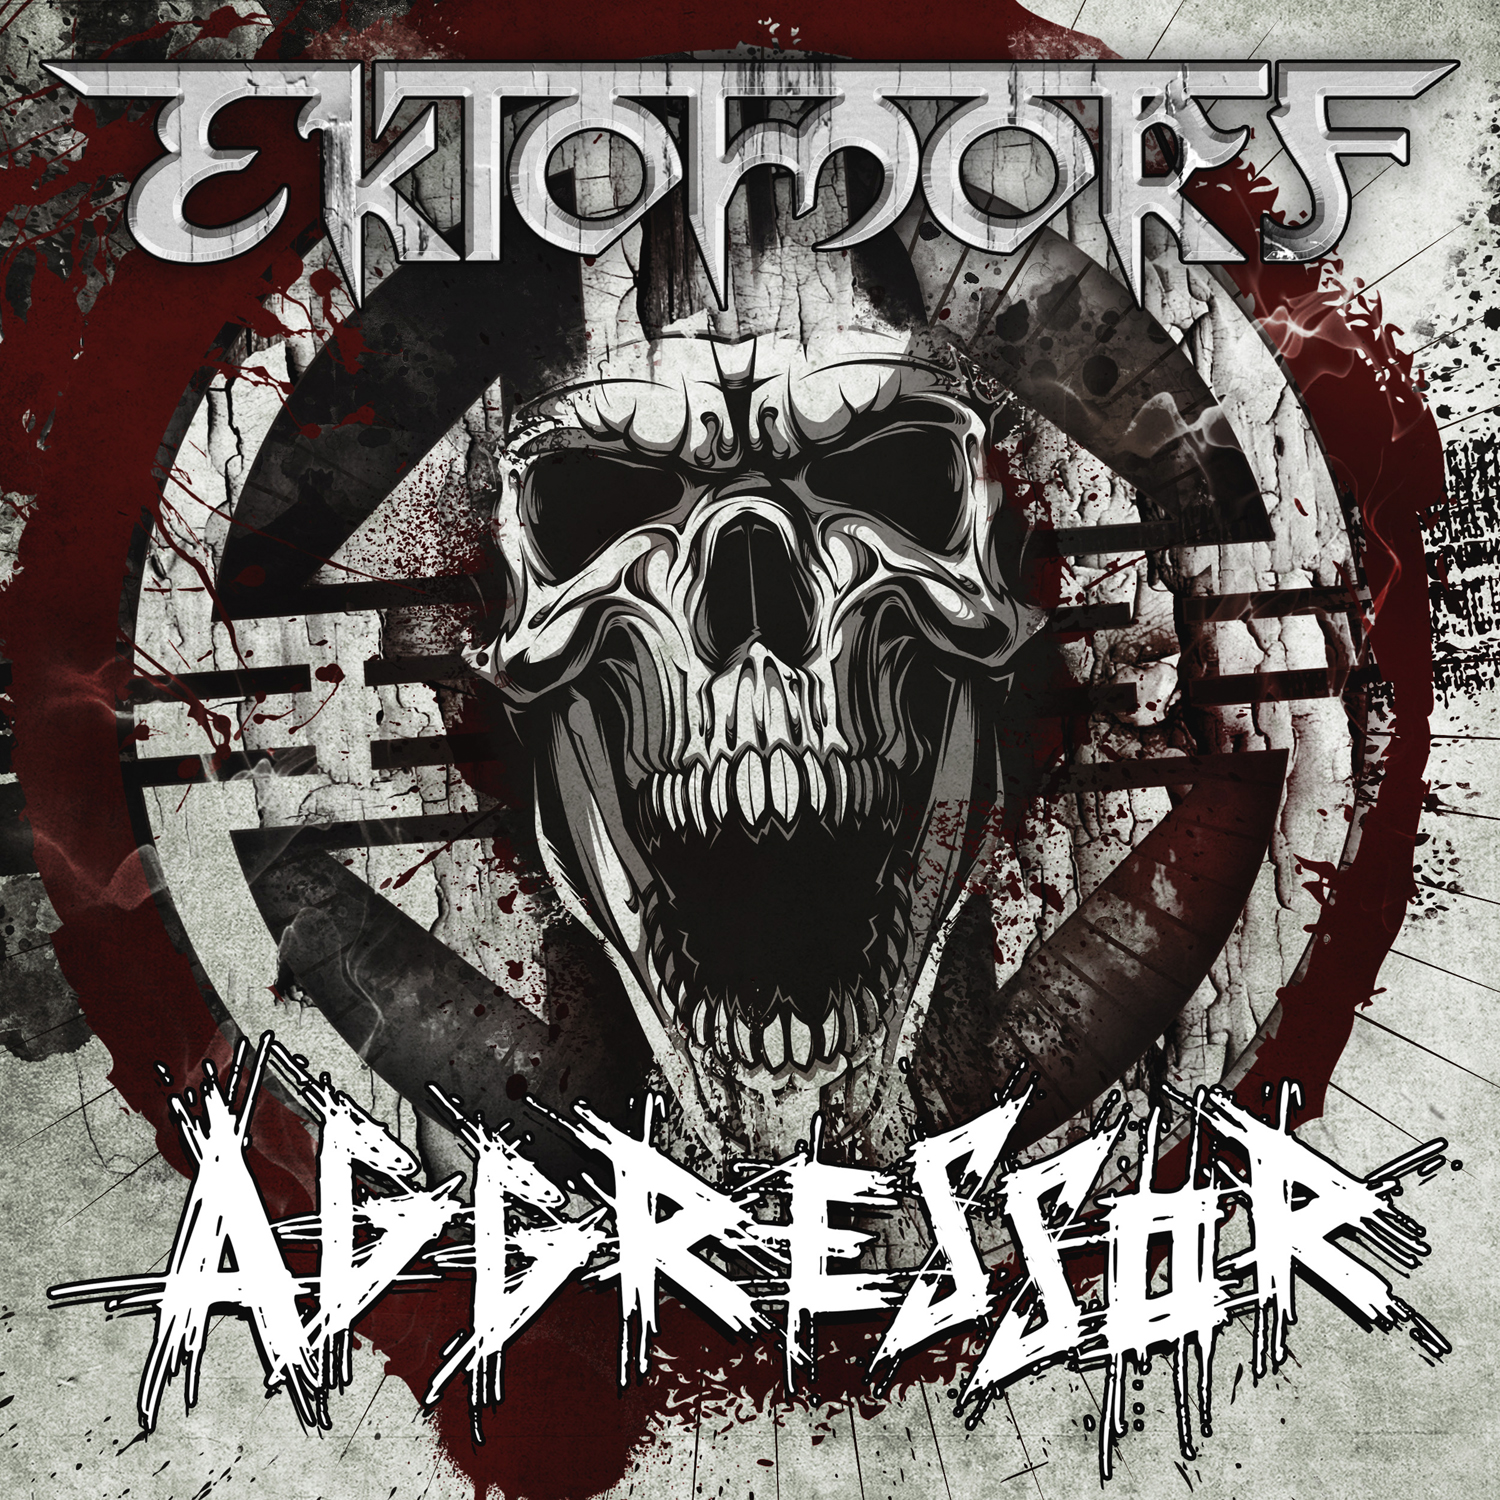 Rock Reviews dirt image: http://www.angrymetalguy.com/wp-content/uploads/2015/11/Ektomorf_Aggressor.jpg